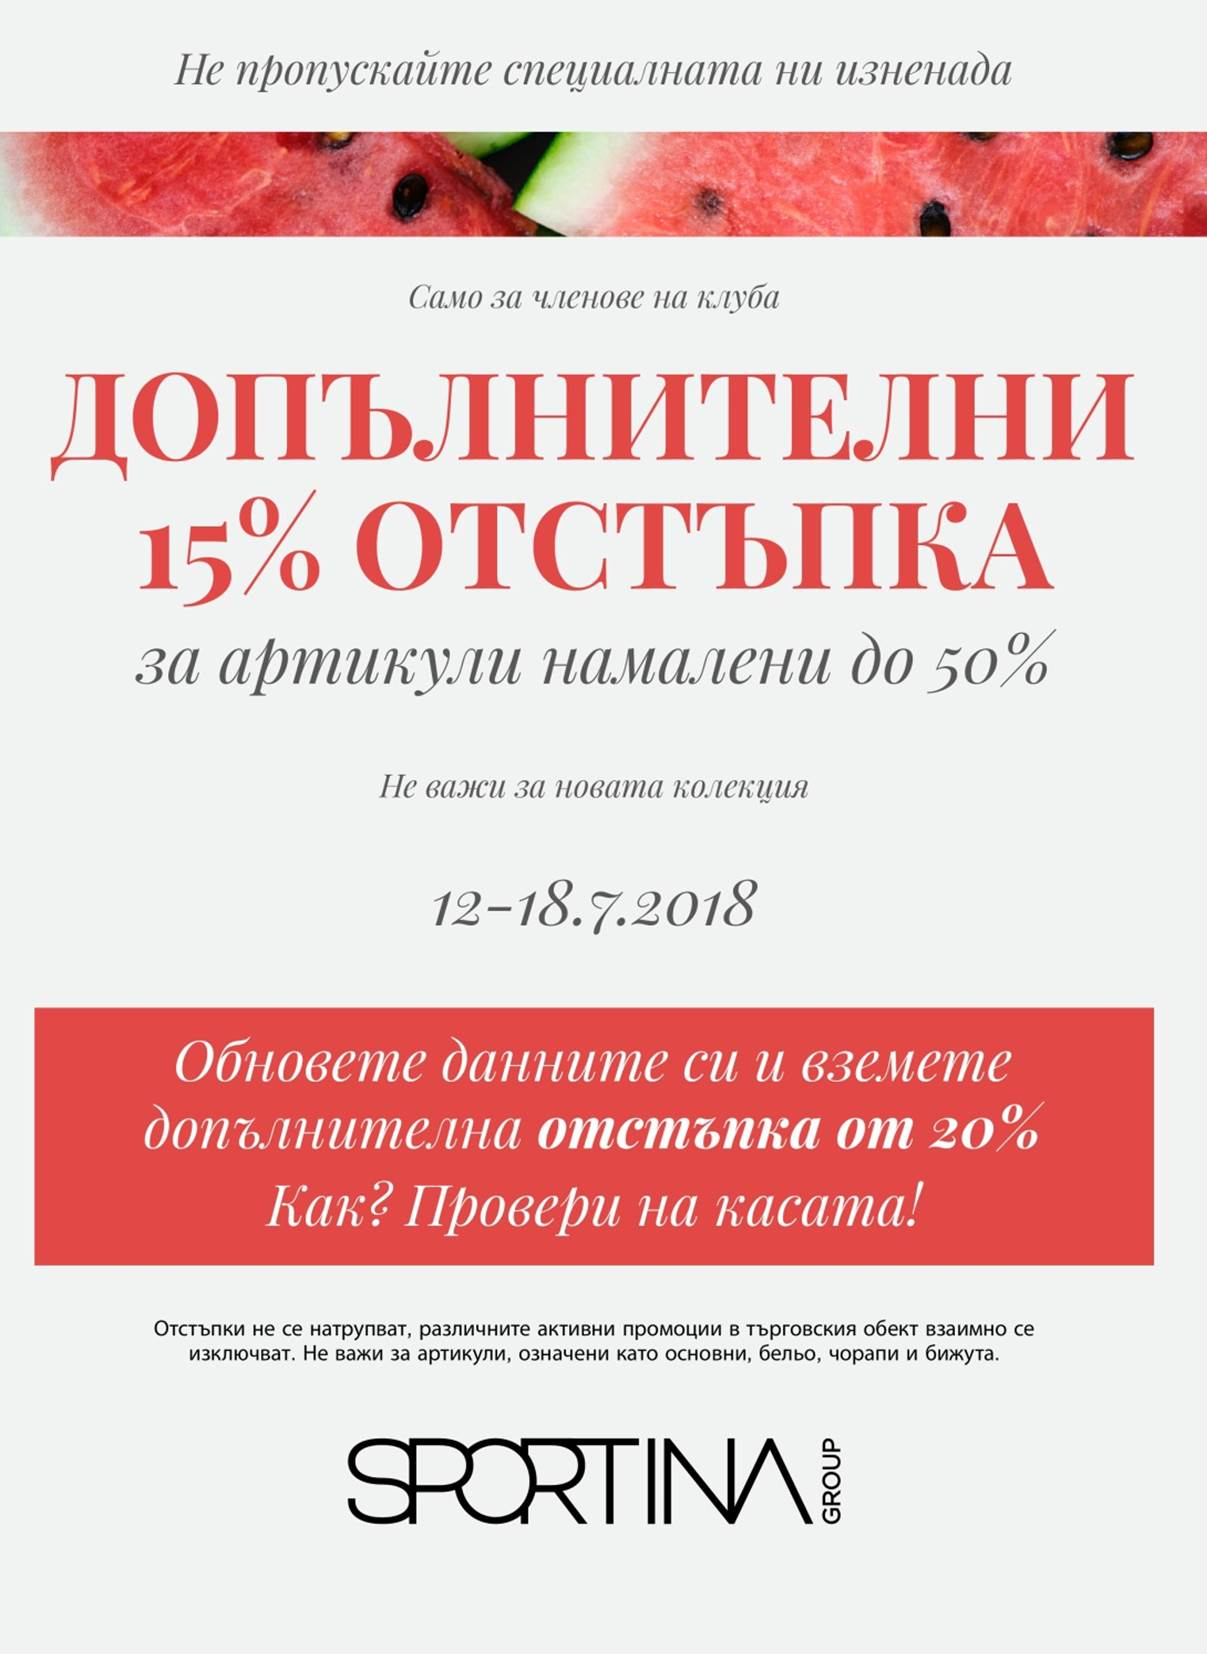 Additional discounts for members of Sportina Group